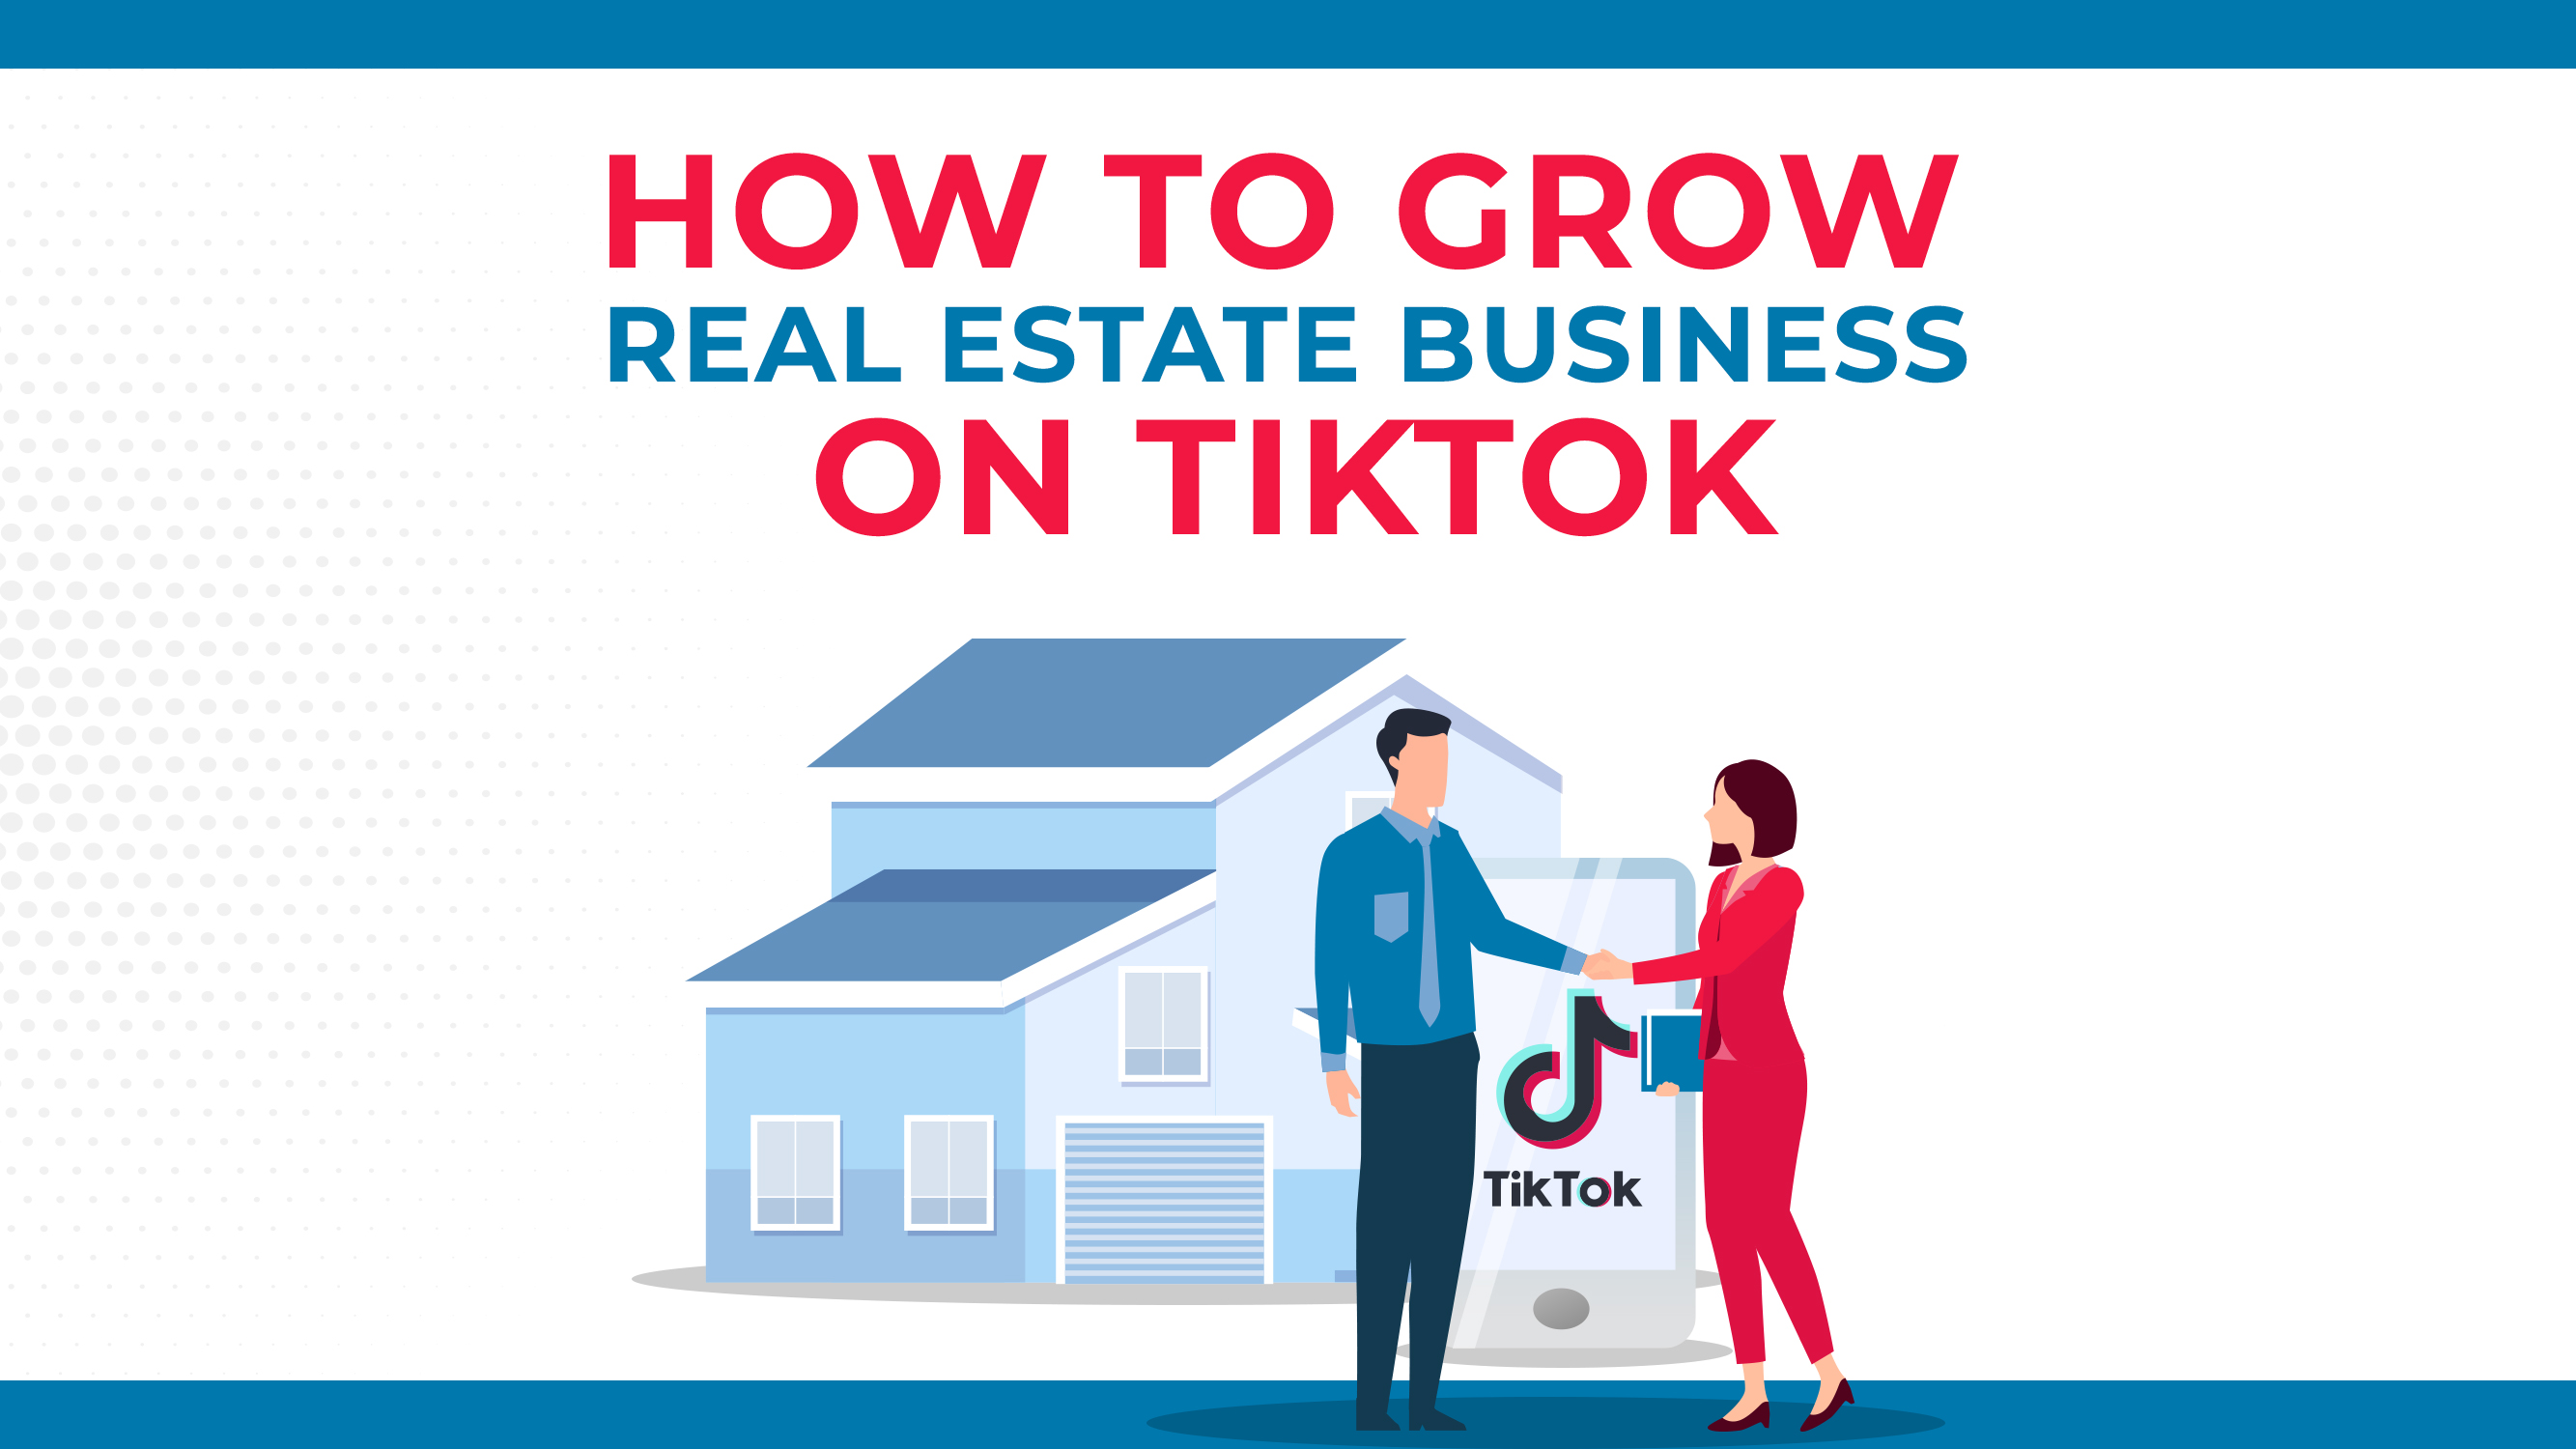 Come far crescere il tuo business immobiliare su TikTok